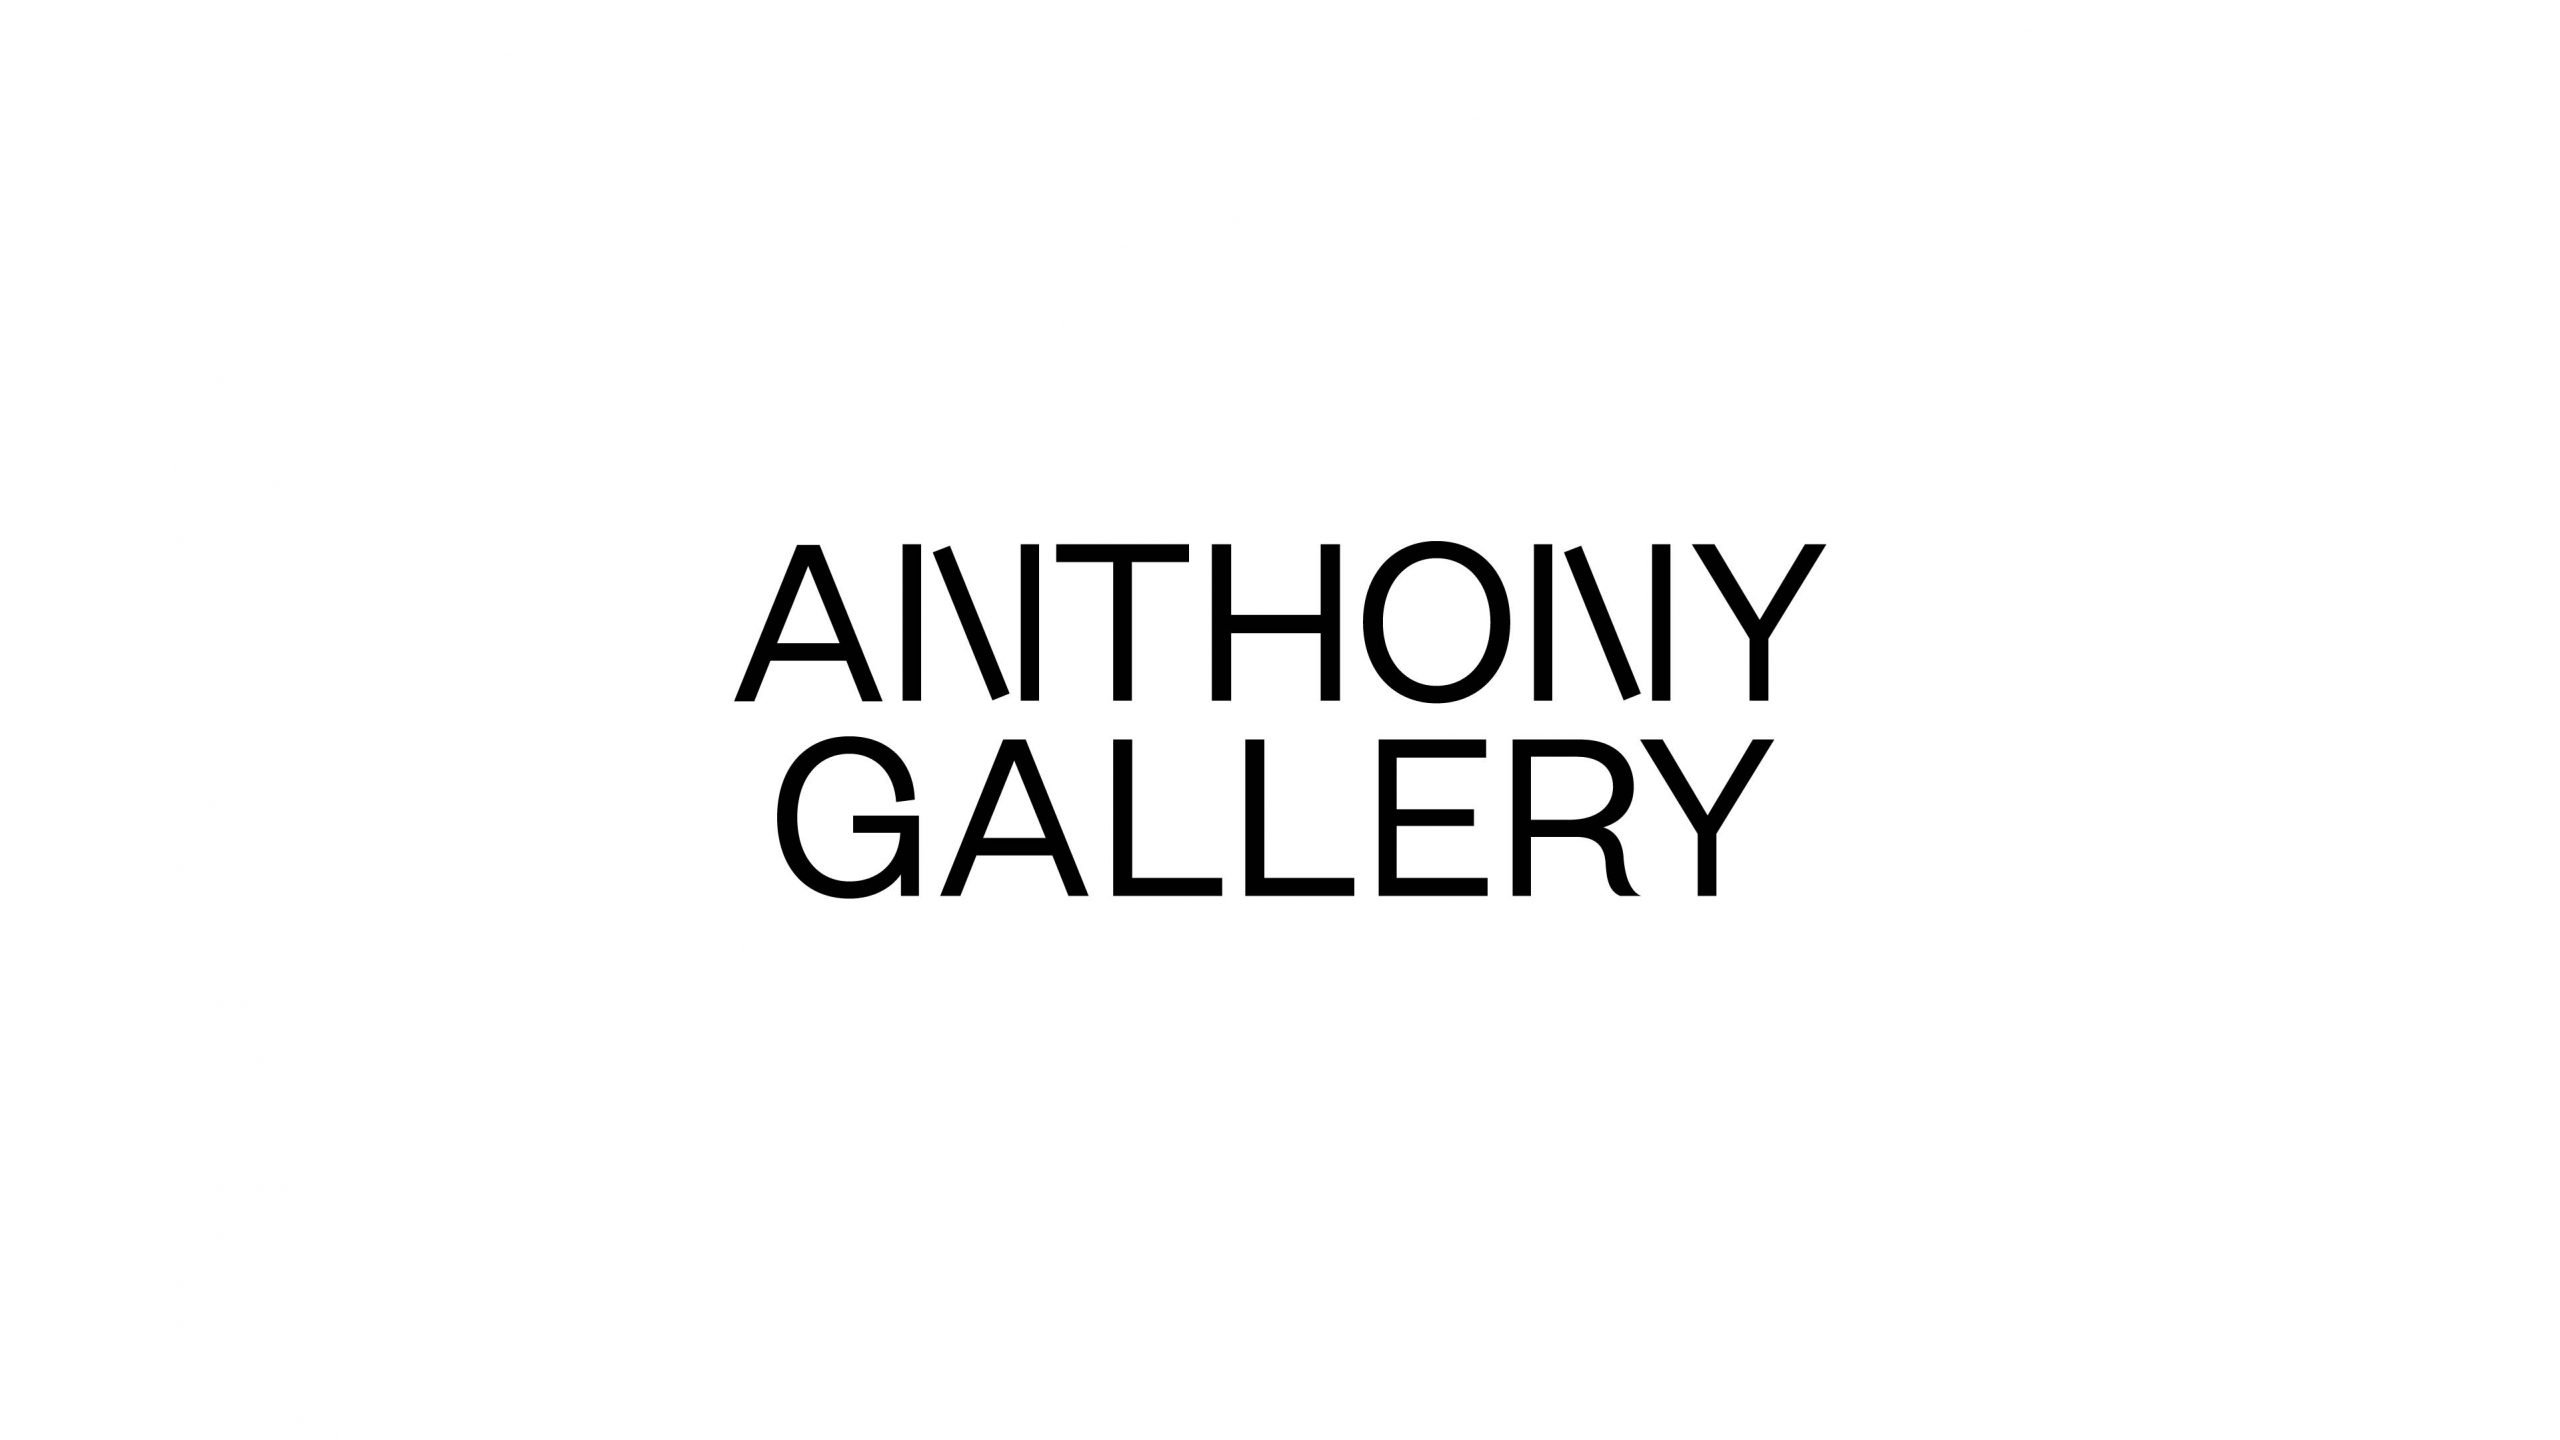 ANTHONY-GALLERY-identity-01